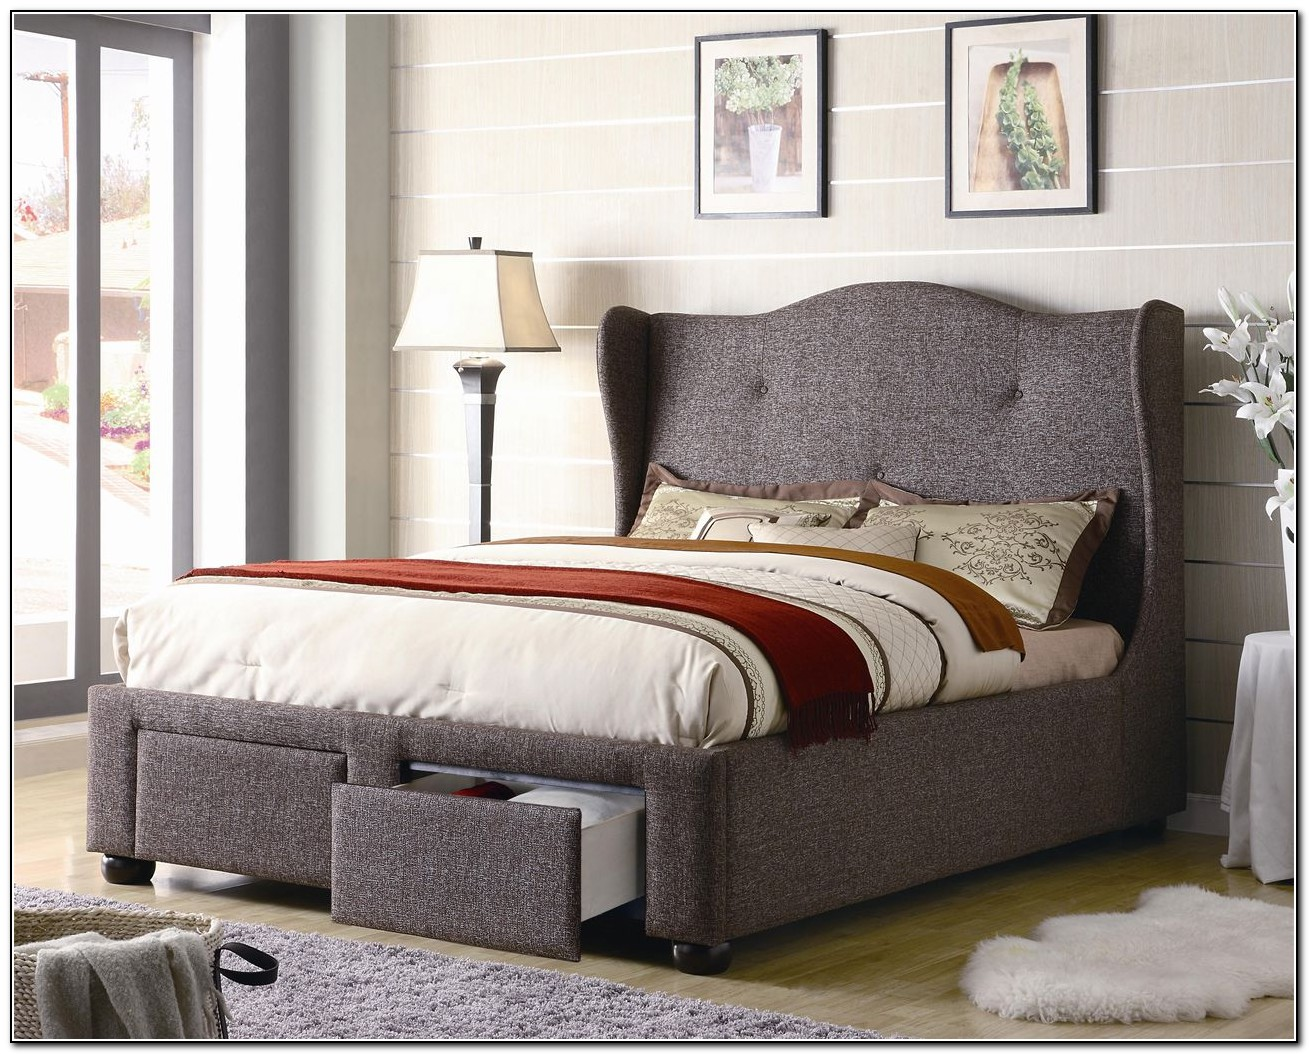 Upholstered Queen Bed With Drawers